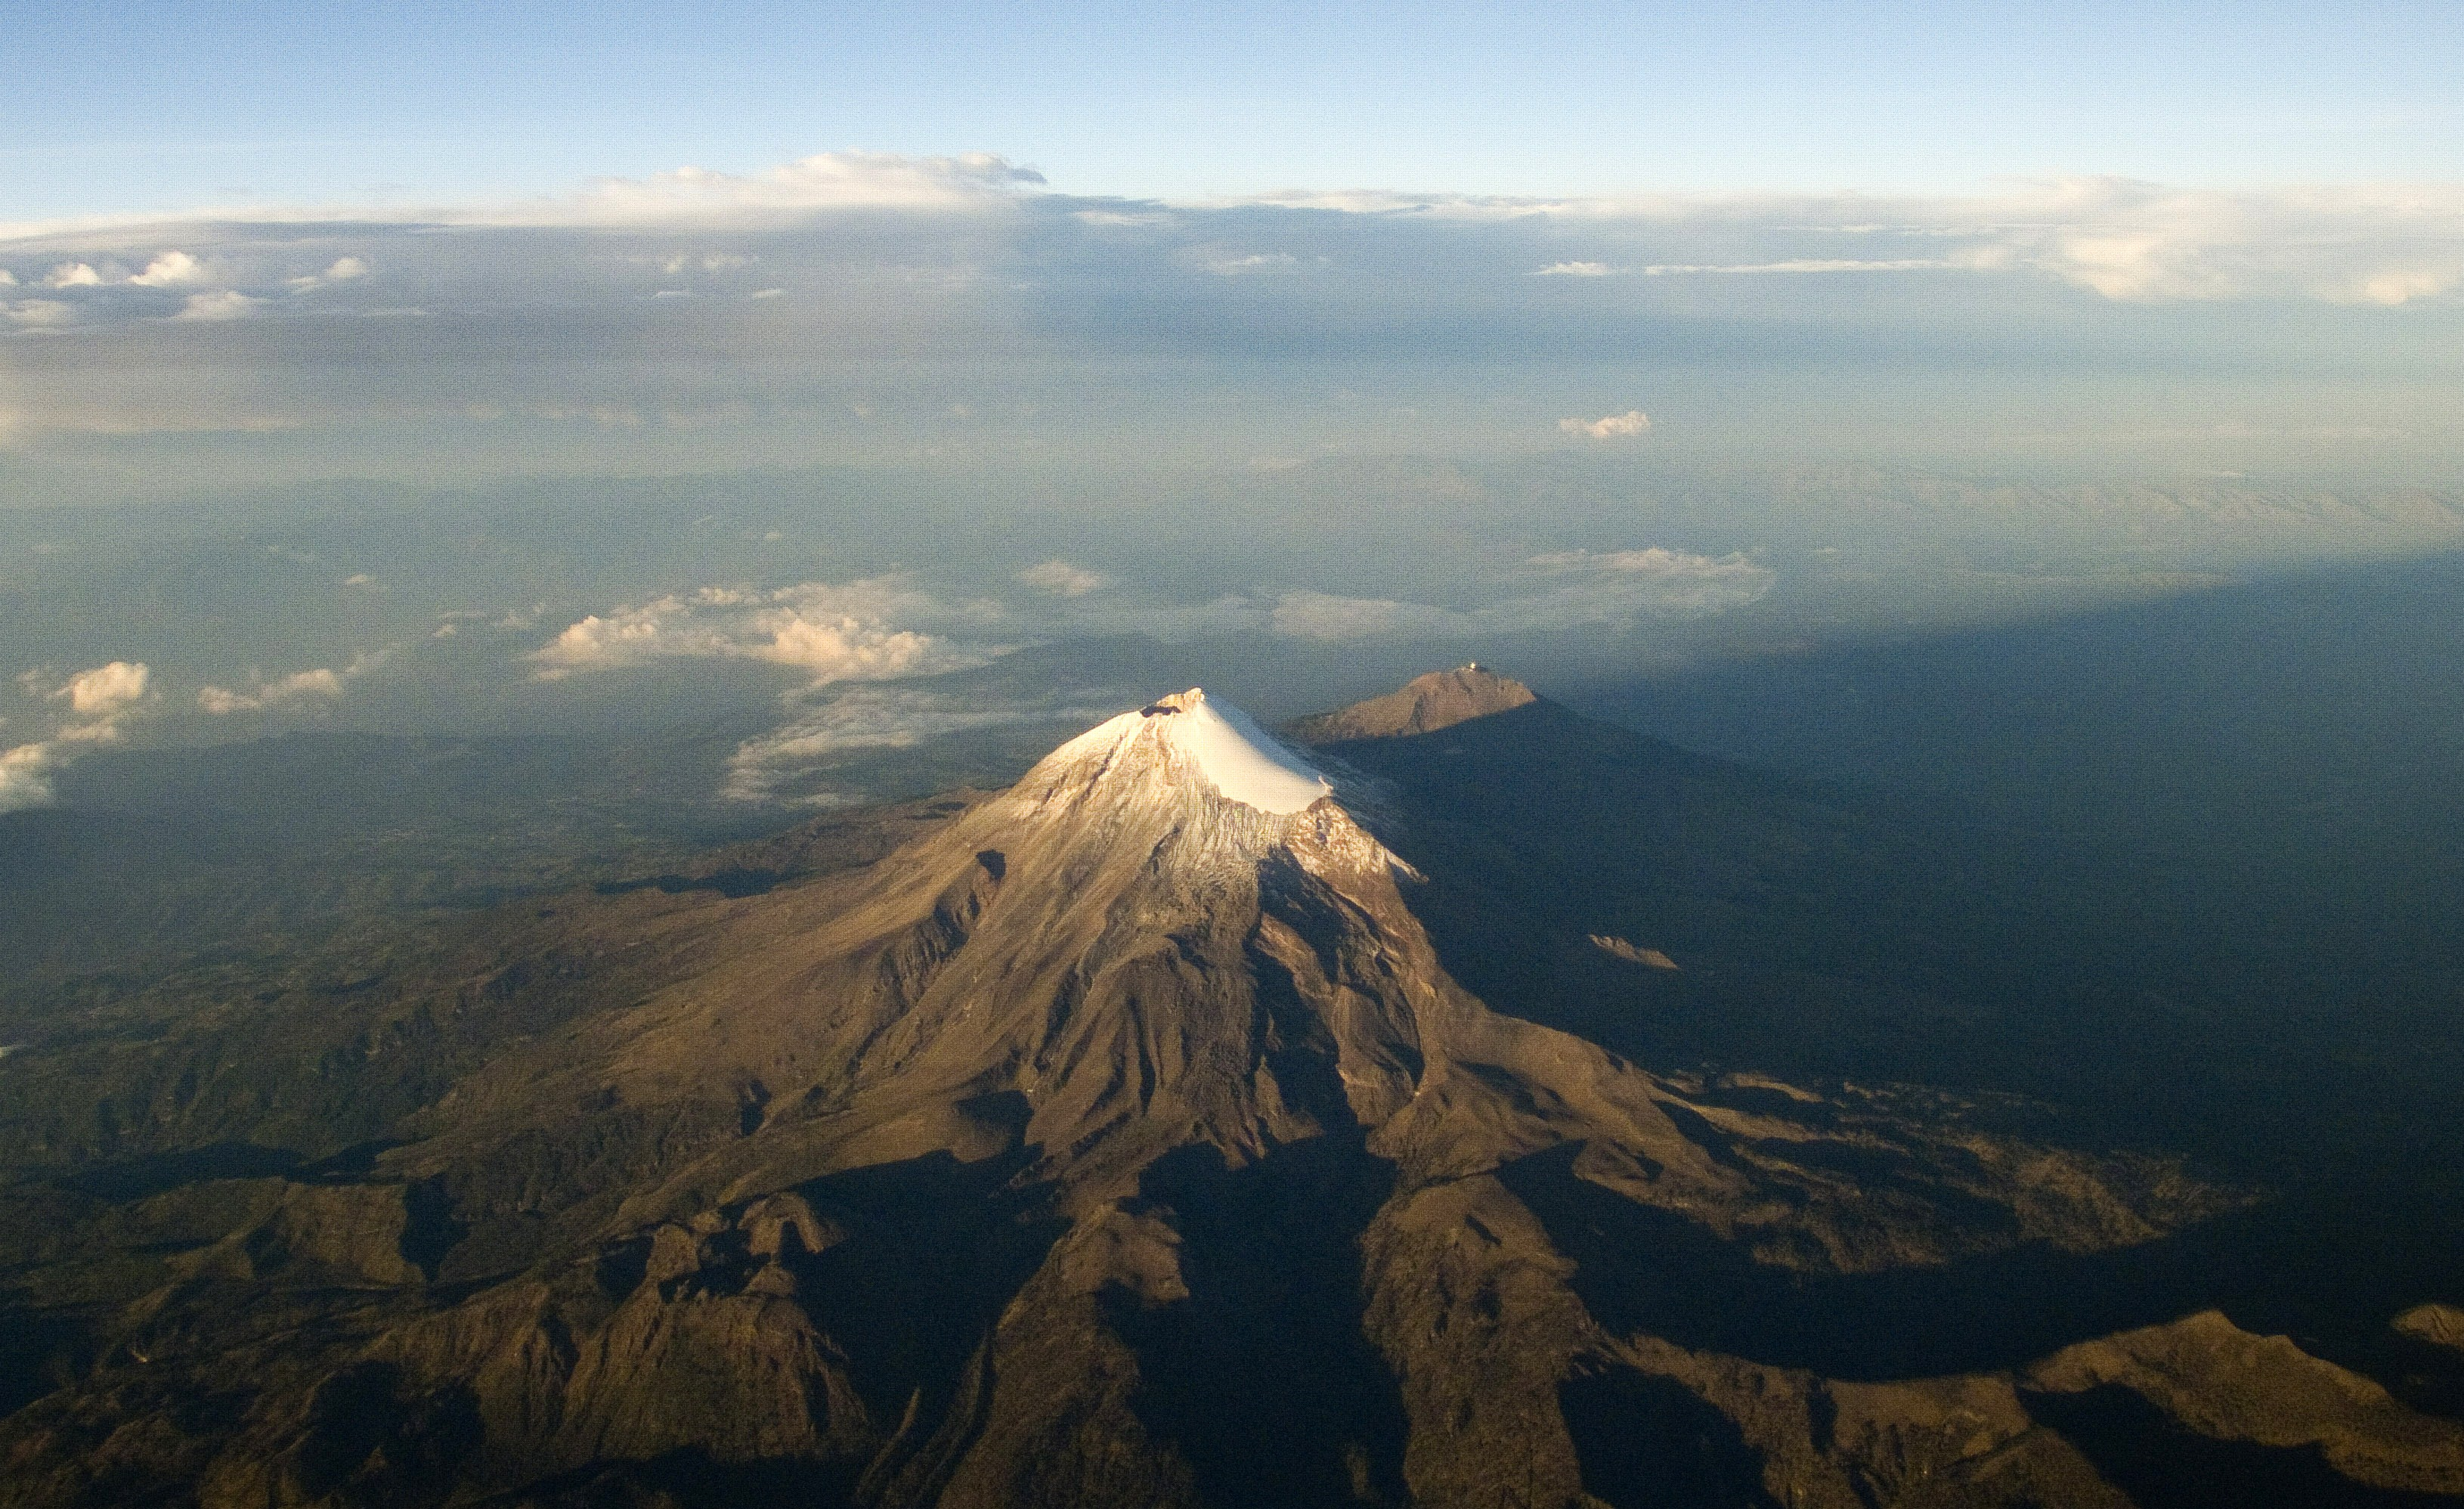 Aereal view of the Citlaltepetl volcano or Pico de Orizaba, the highest mountain in Mexico and the third highest in North America in Veracruz State, Mexico on June 1, 2014.